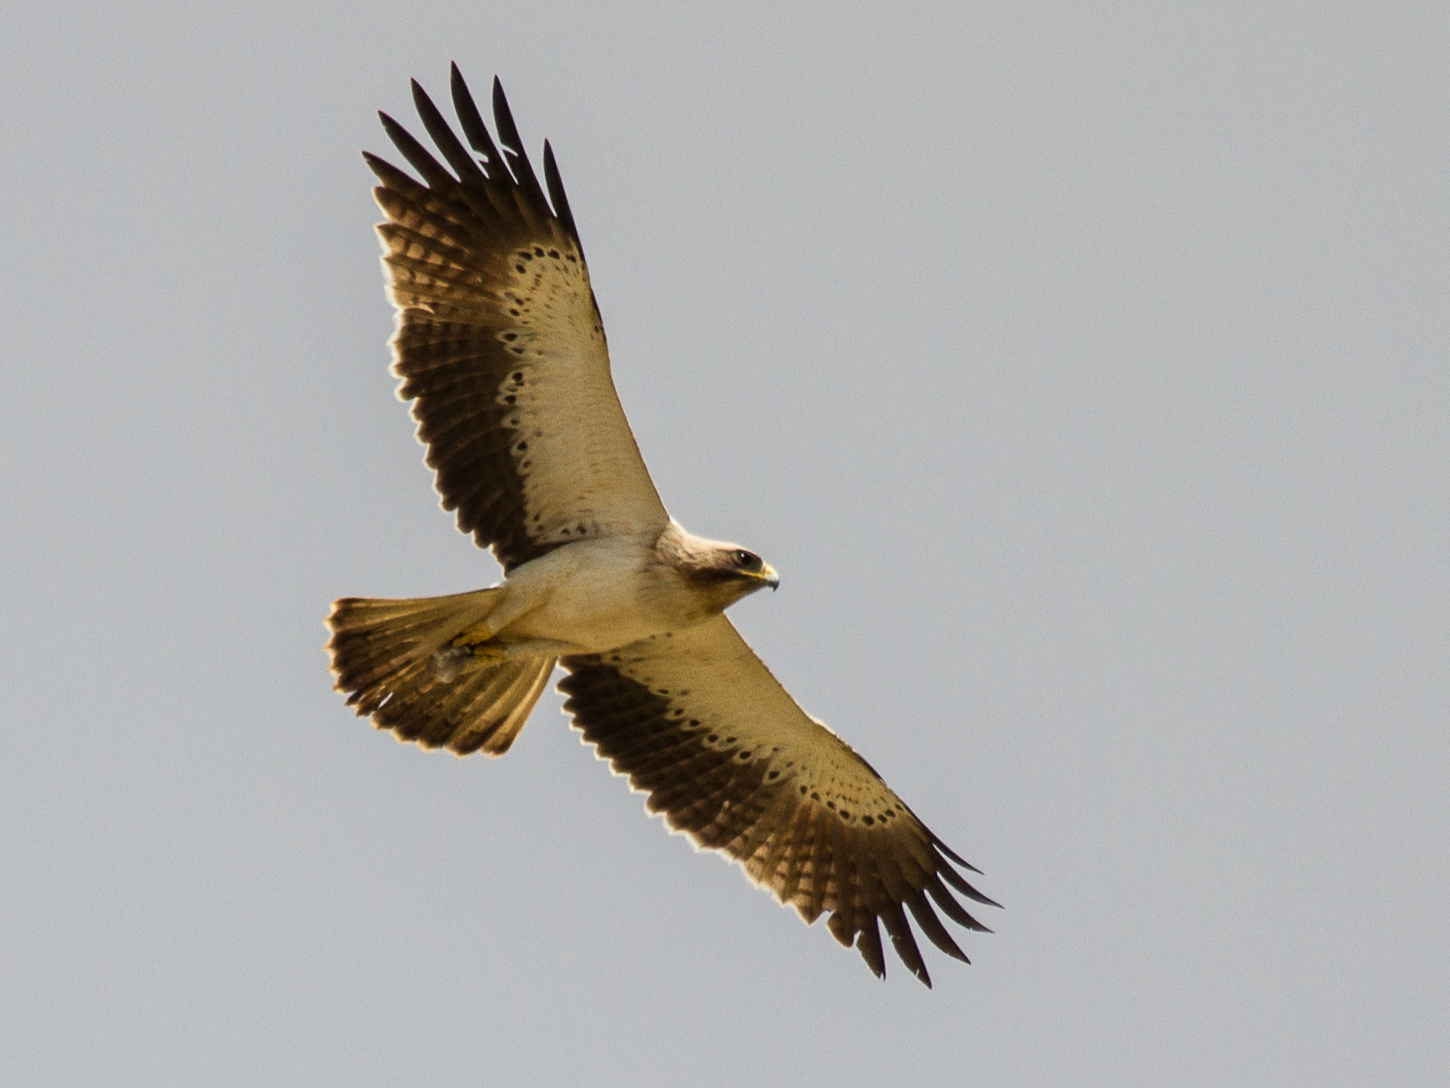 File:Booted eagle in flight.jpg